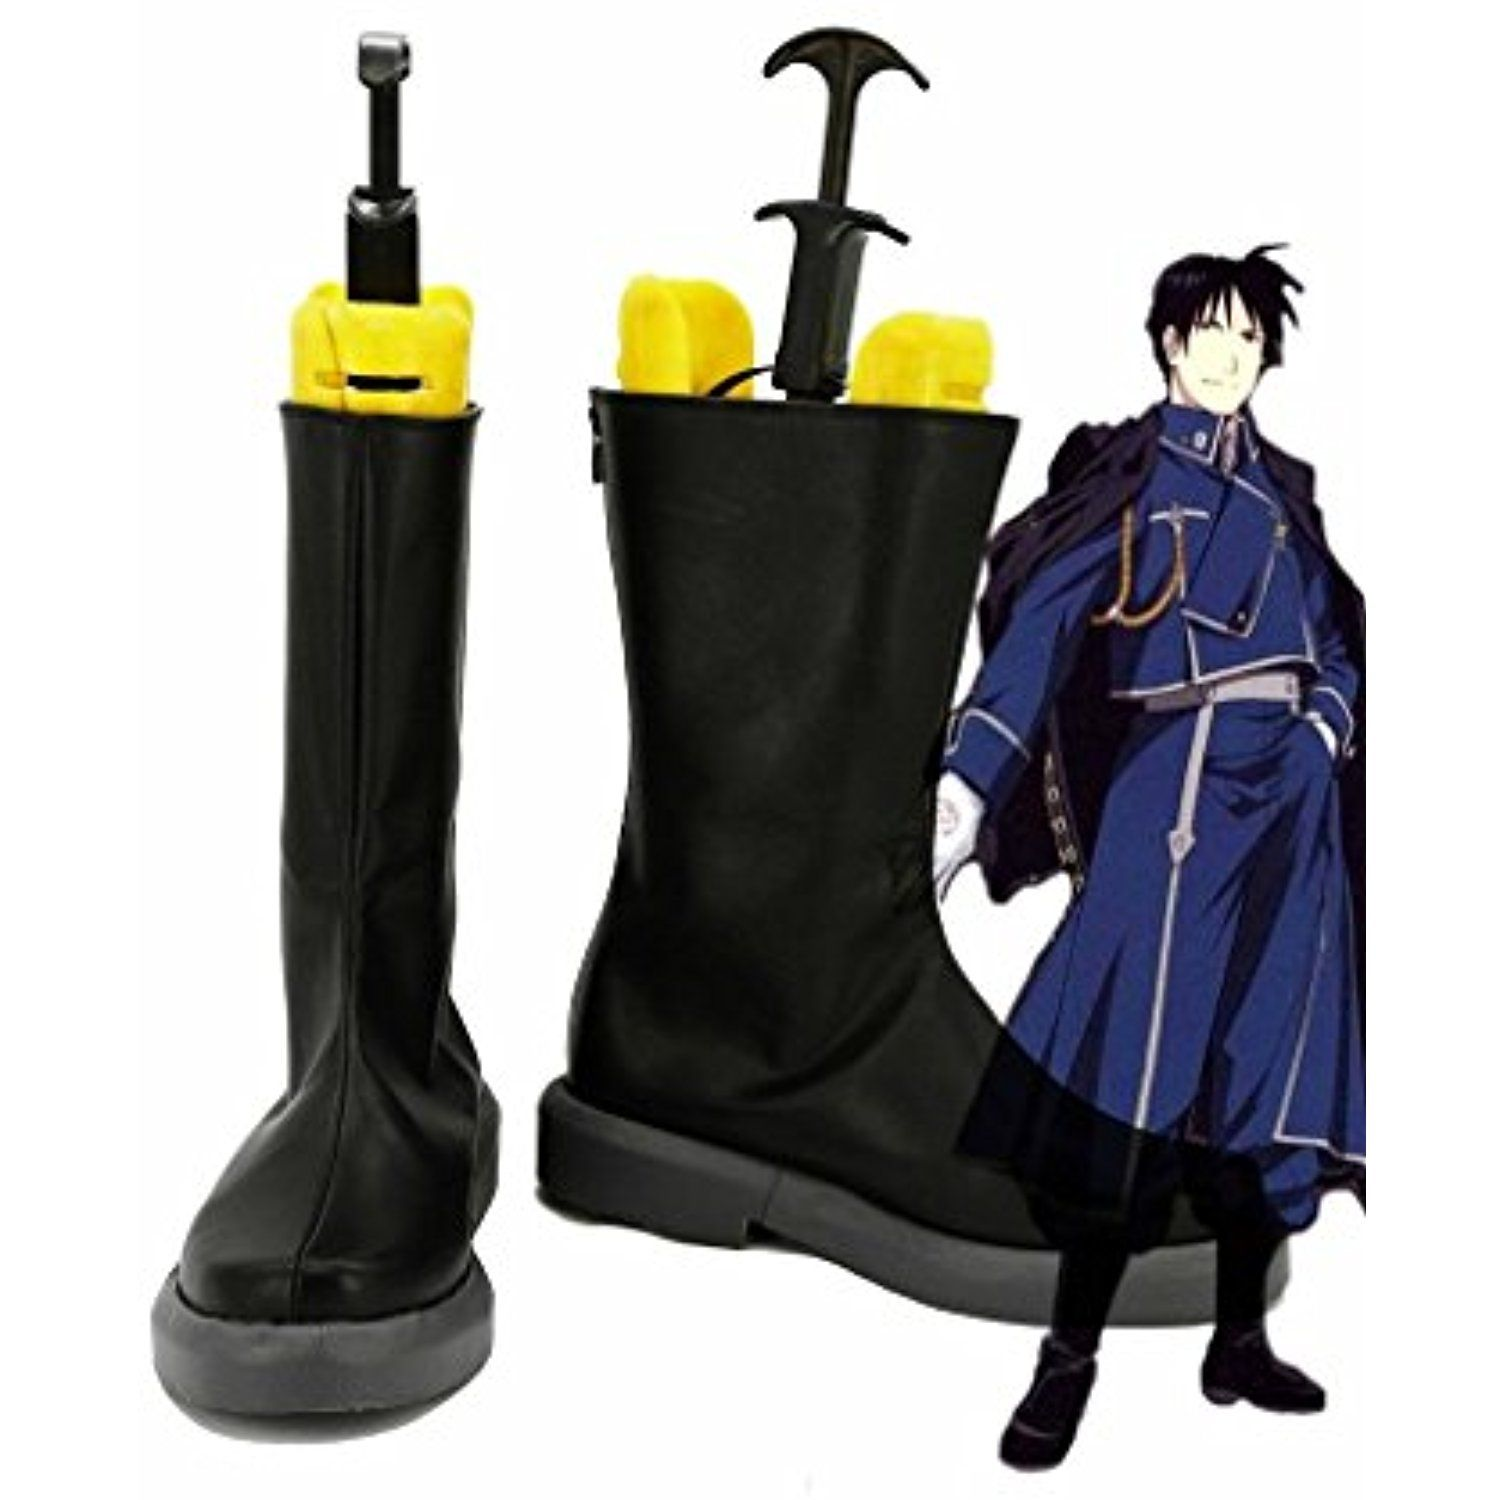 Fullmetal Alchemist Roy Mustang Cosplay Shoes Boots Custom Made